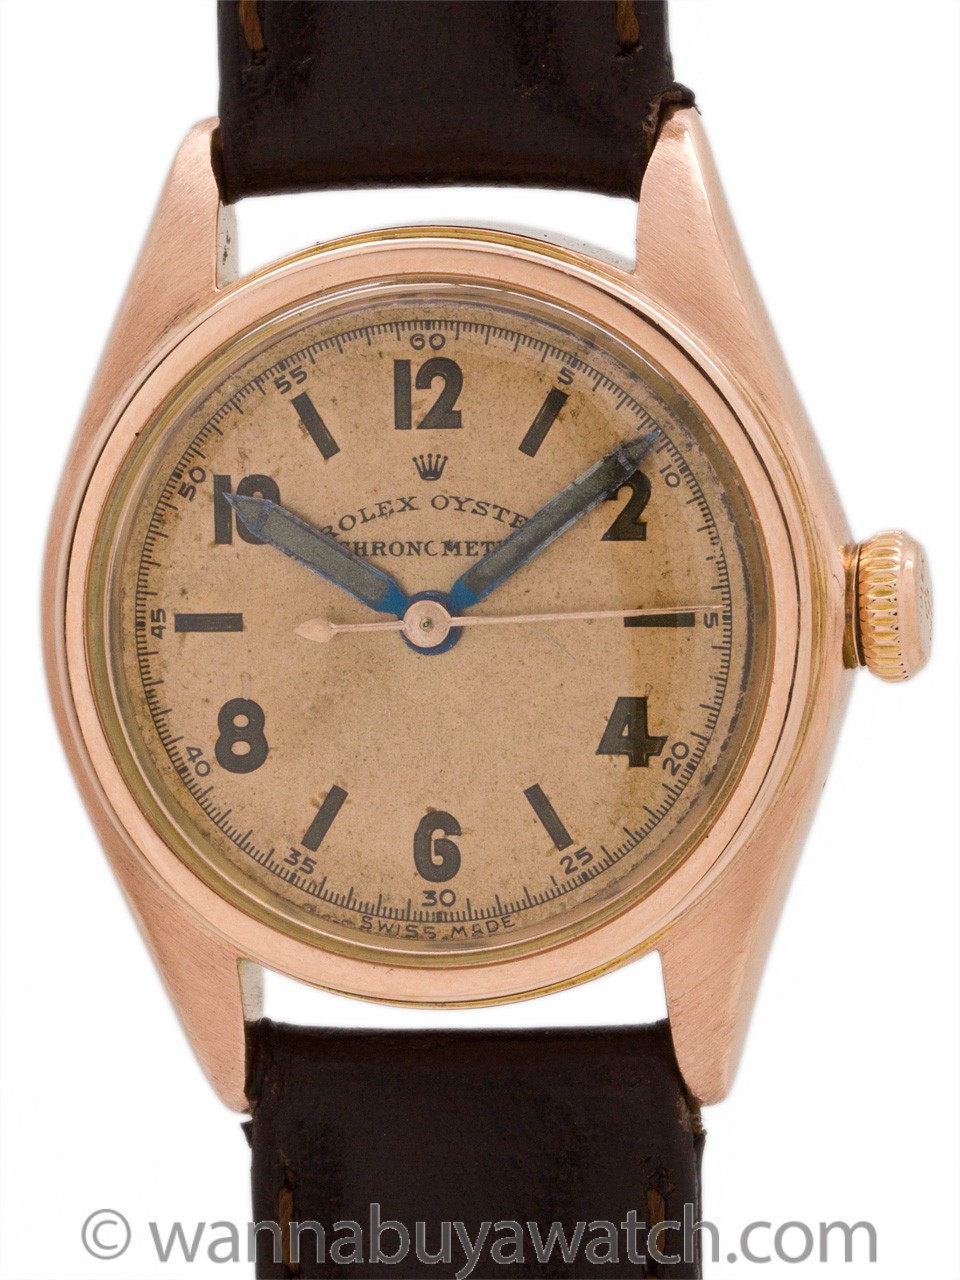 Rolex Oyster Chronometer ref 2595 Boy's Size circa 1940's